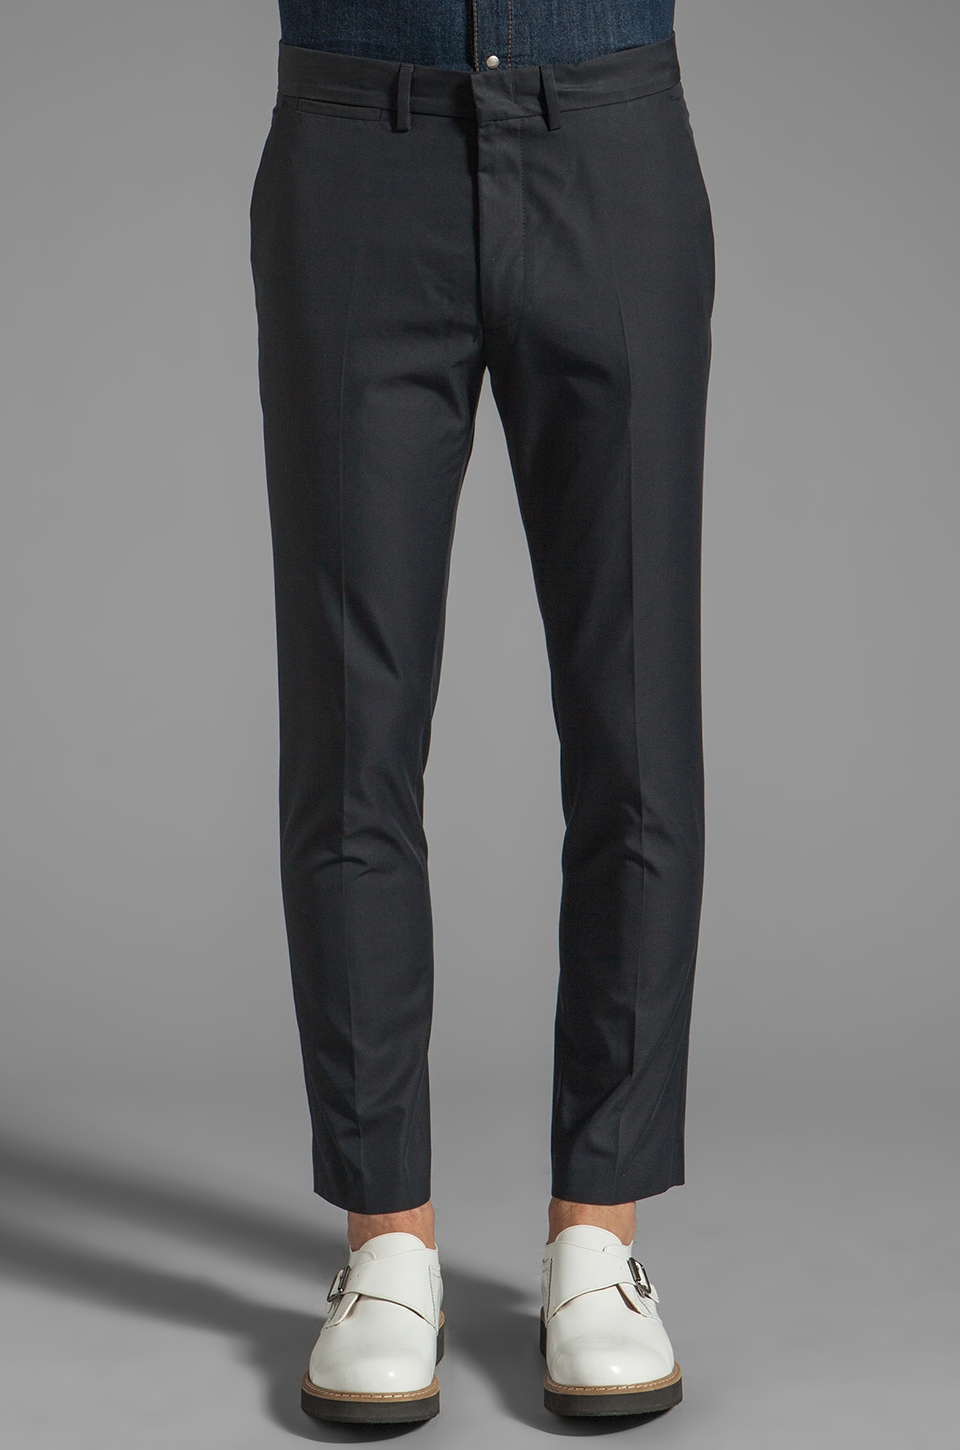 McQ Alexander McQueen Trouser in Deep Navy